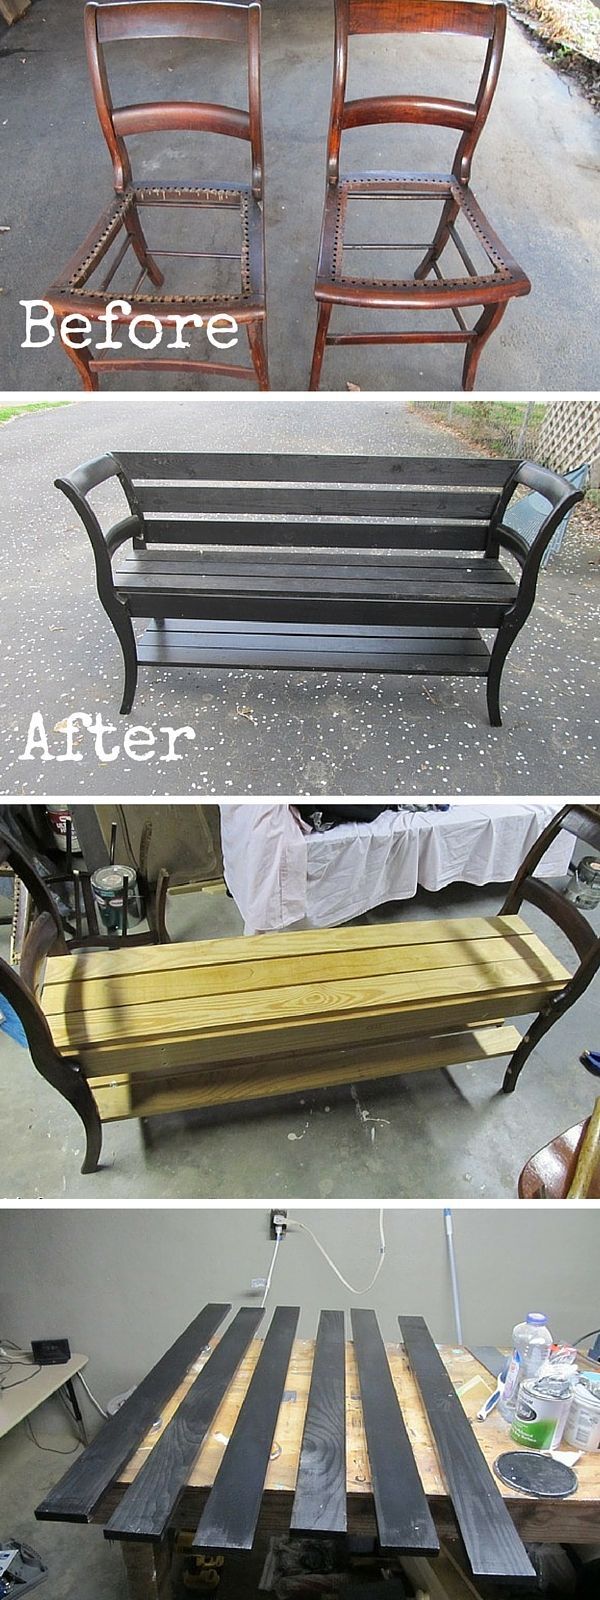 10 Amazing DIY Furniture Transformations Part 59